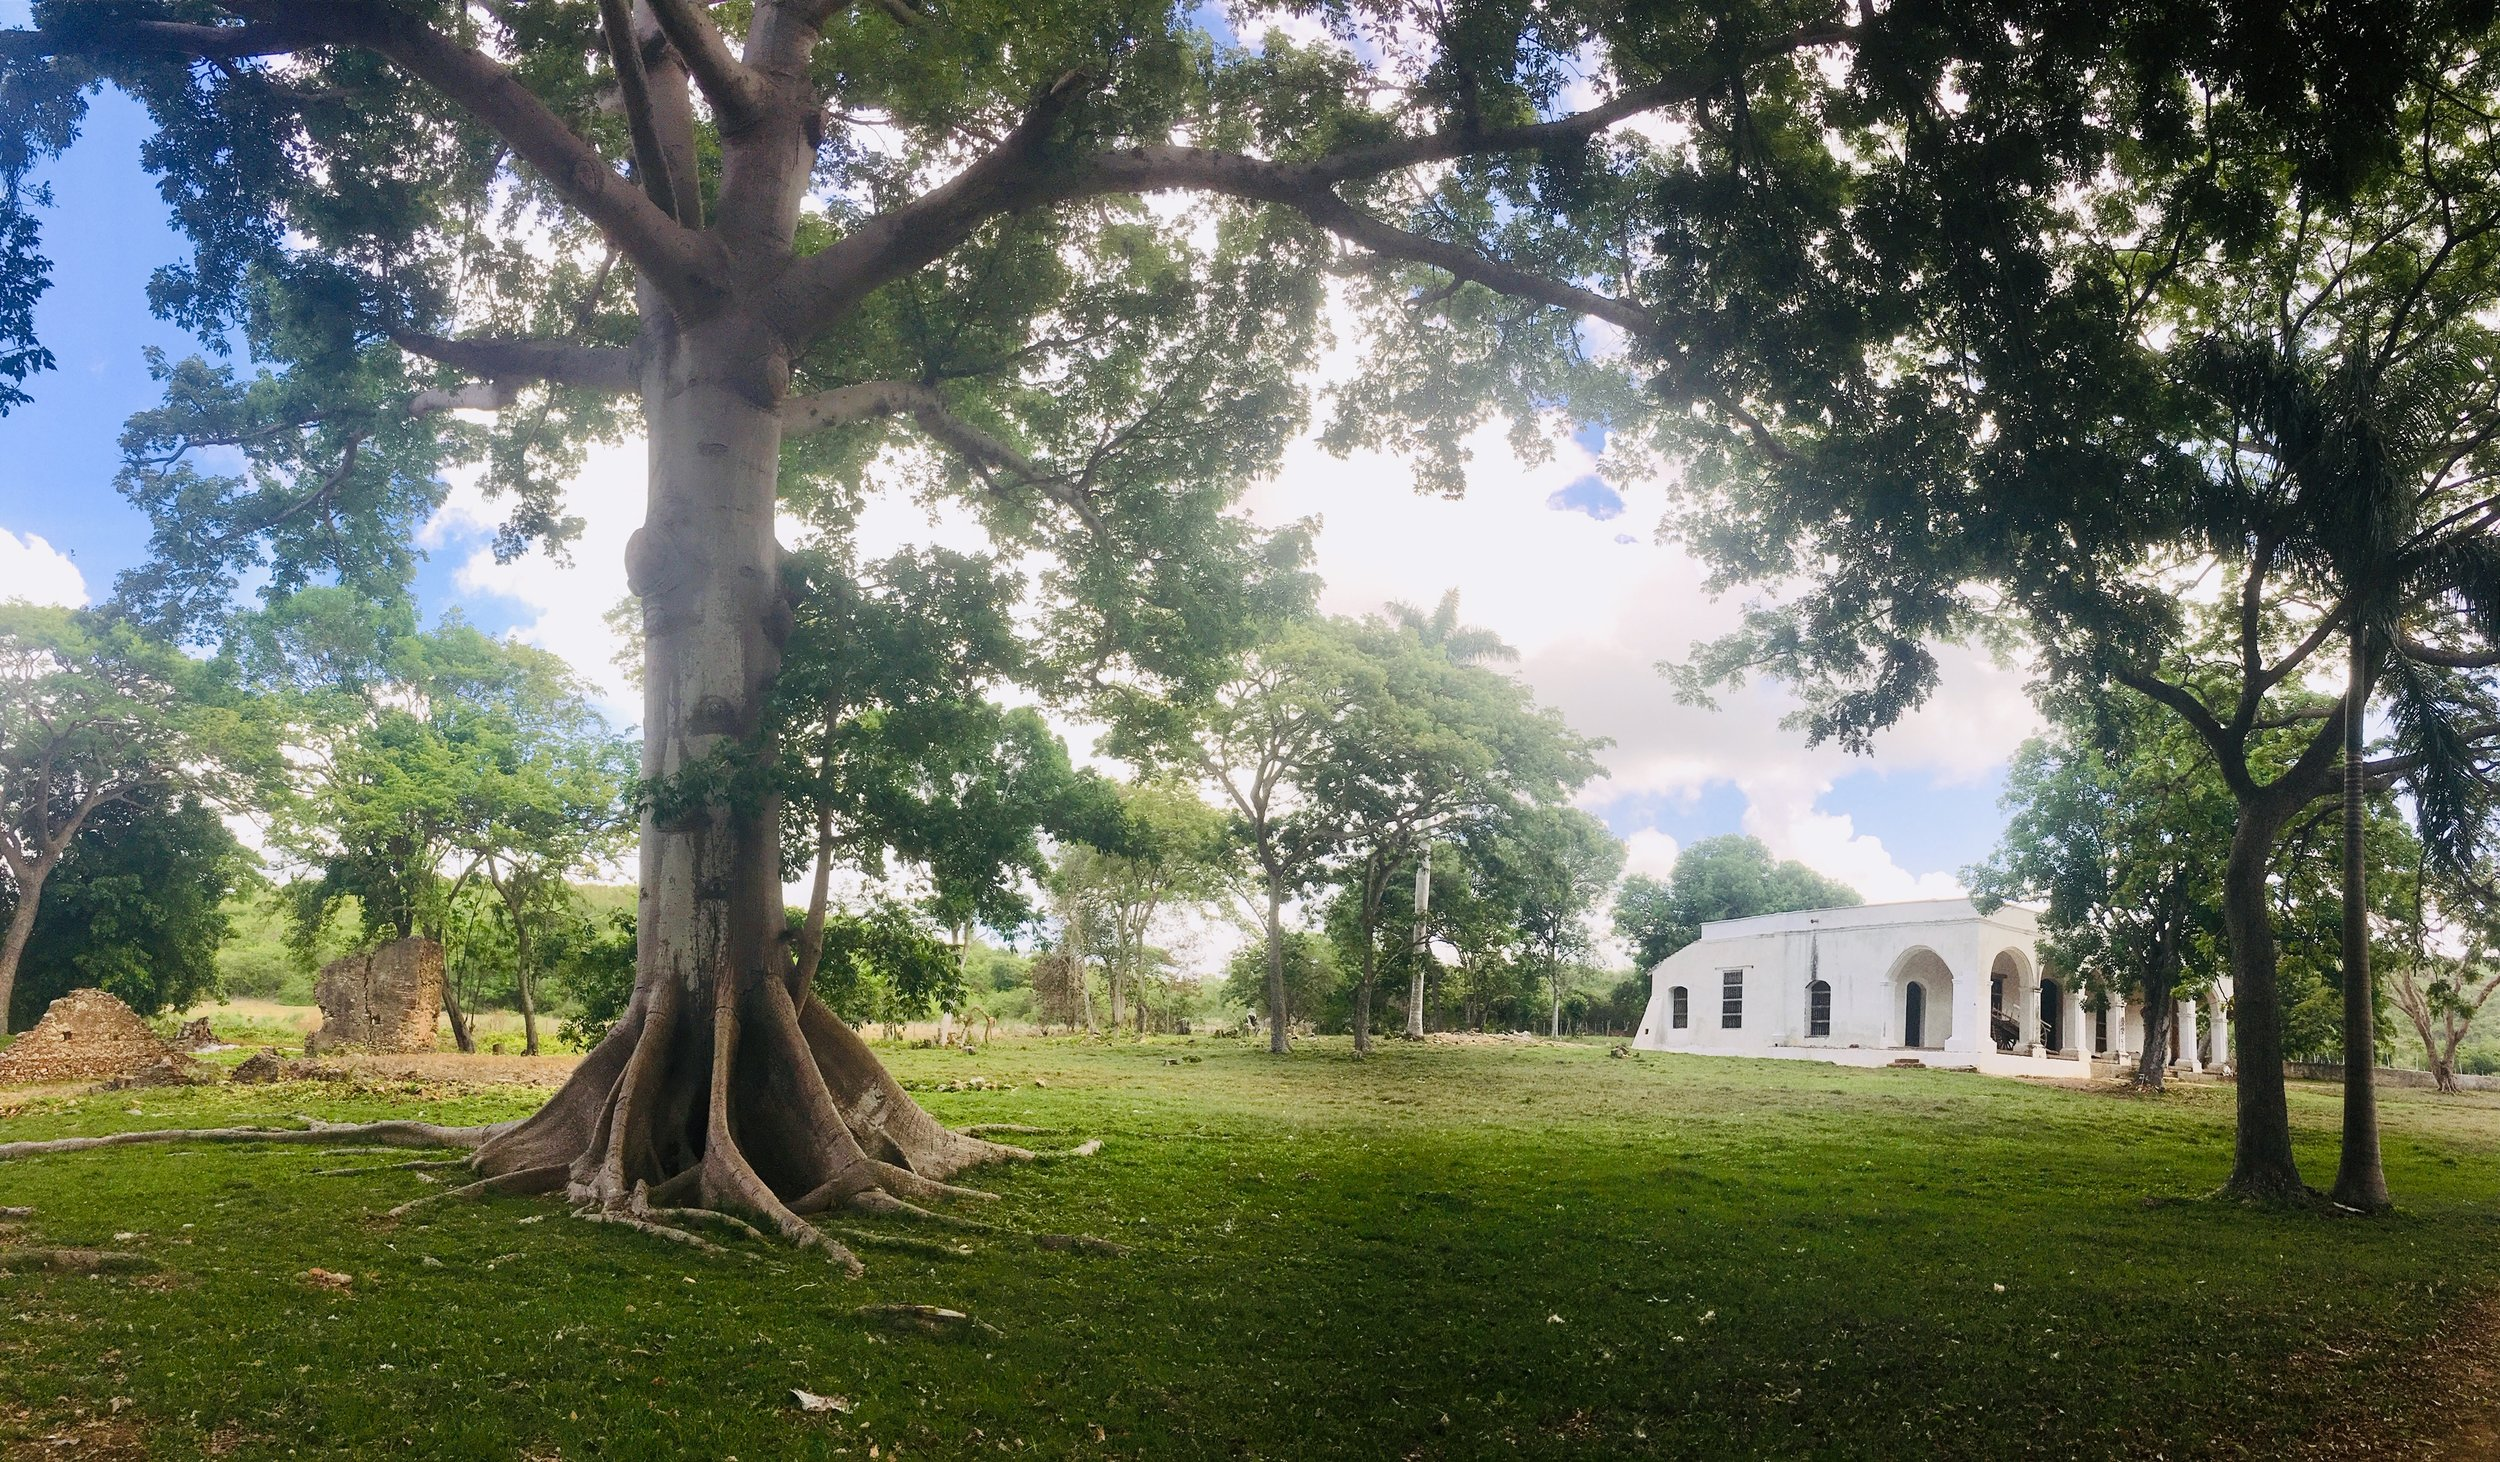 This old tree was the gathering place of slaves on Sundays.